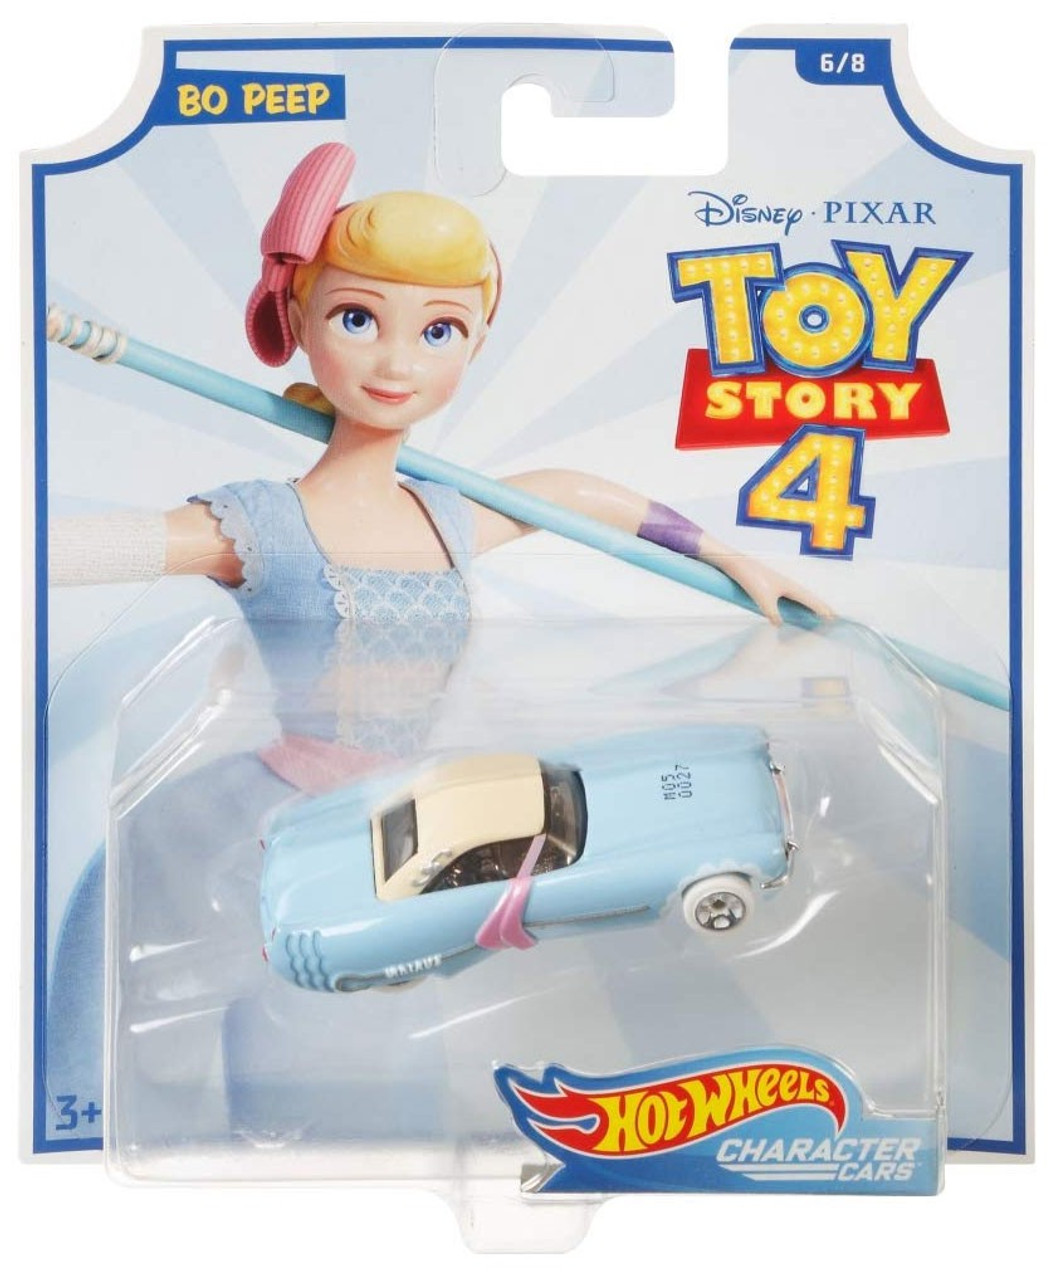 HOT WHEELS CHARACTER CARS DISNEY PIXAR TOY STORY 4 DUCKY AND BUNNY 8//8